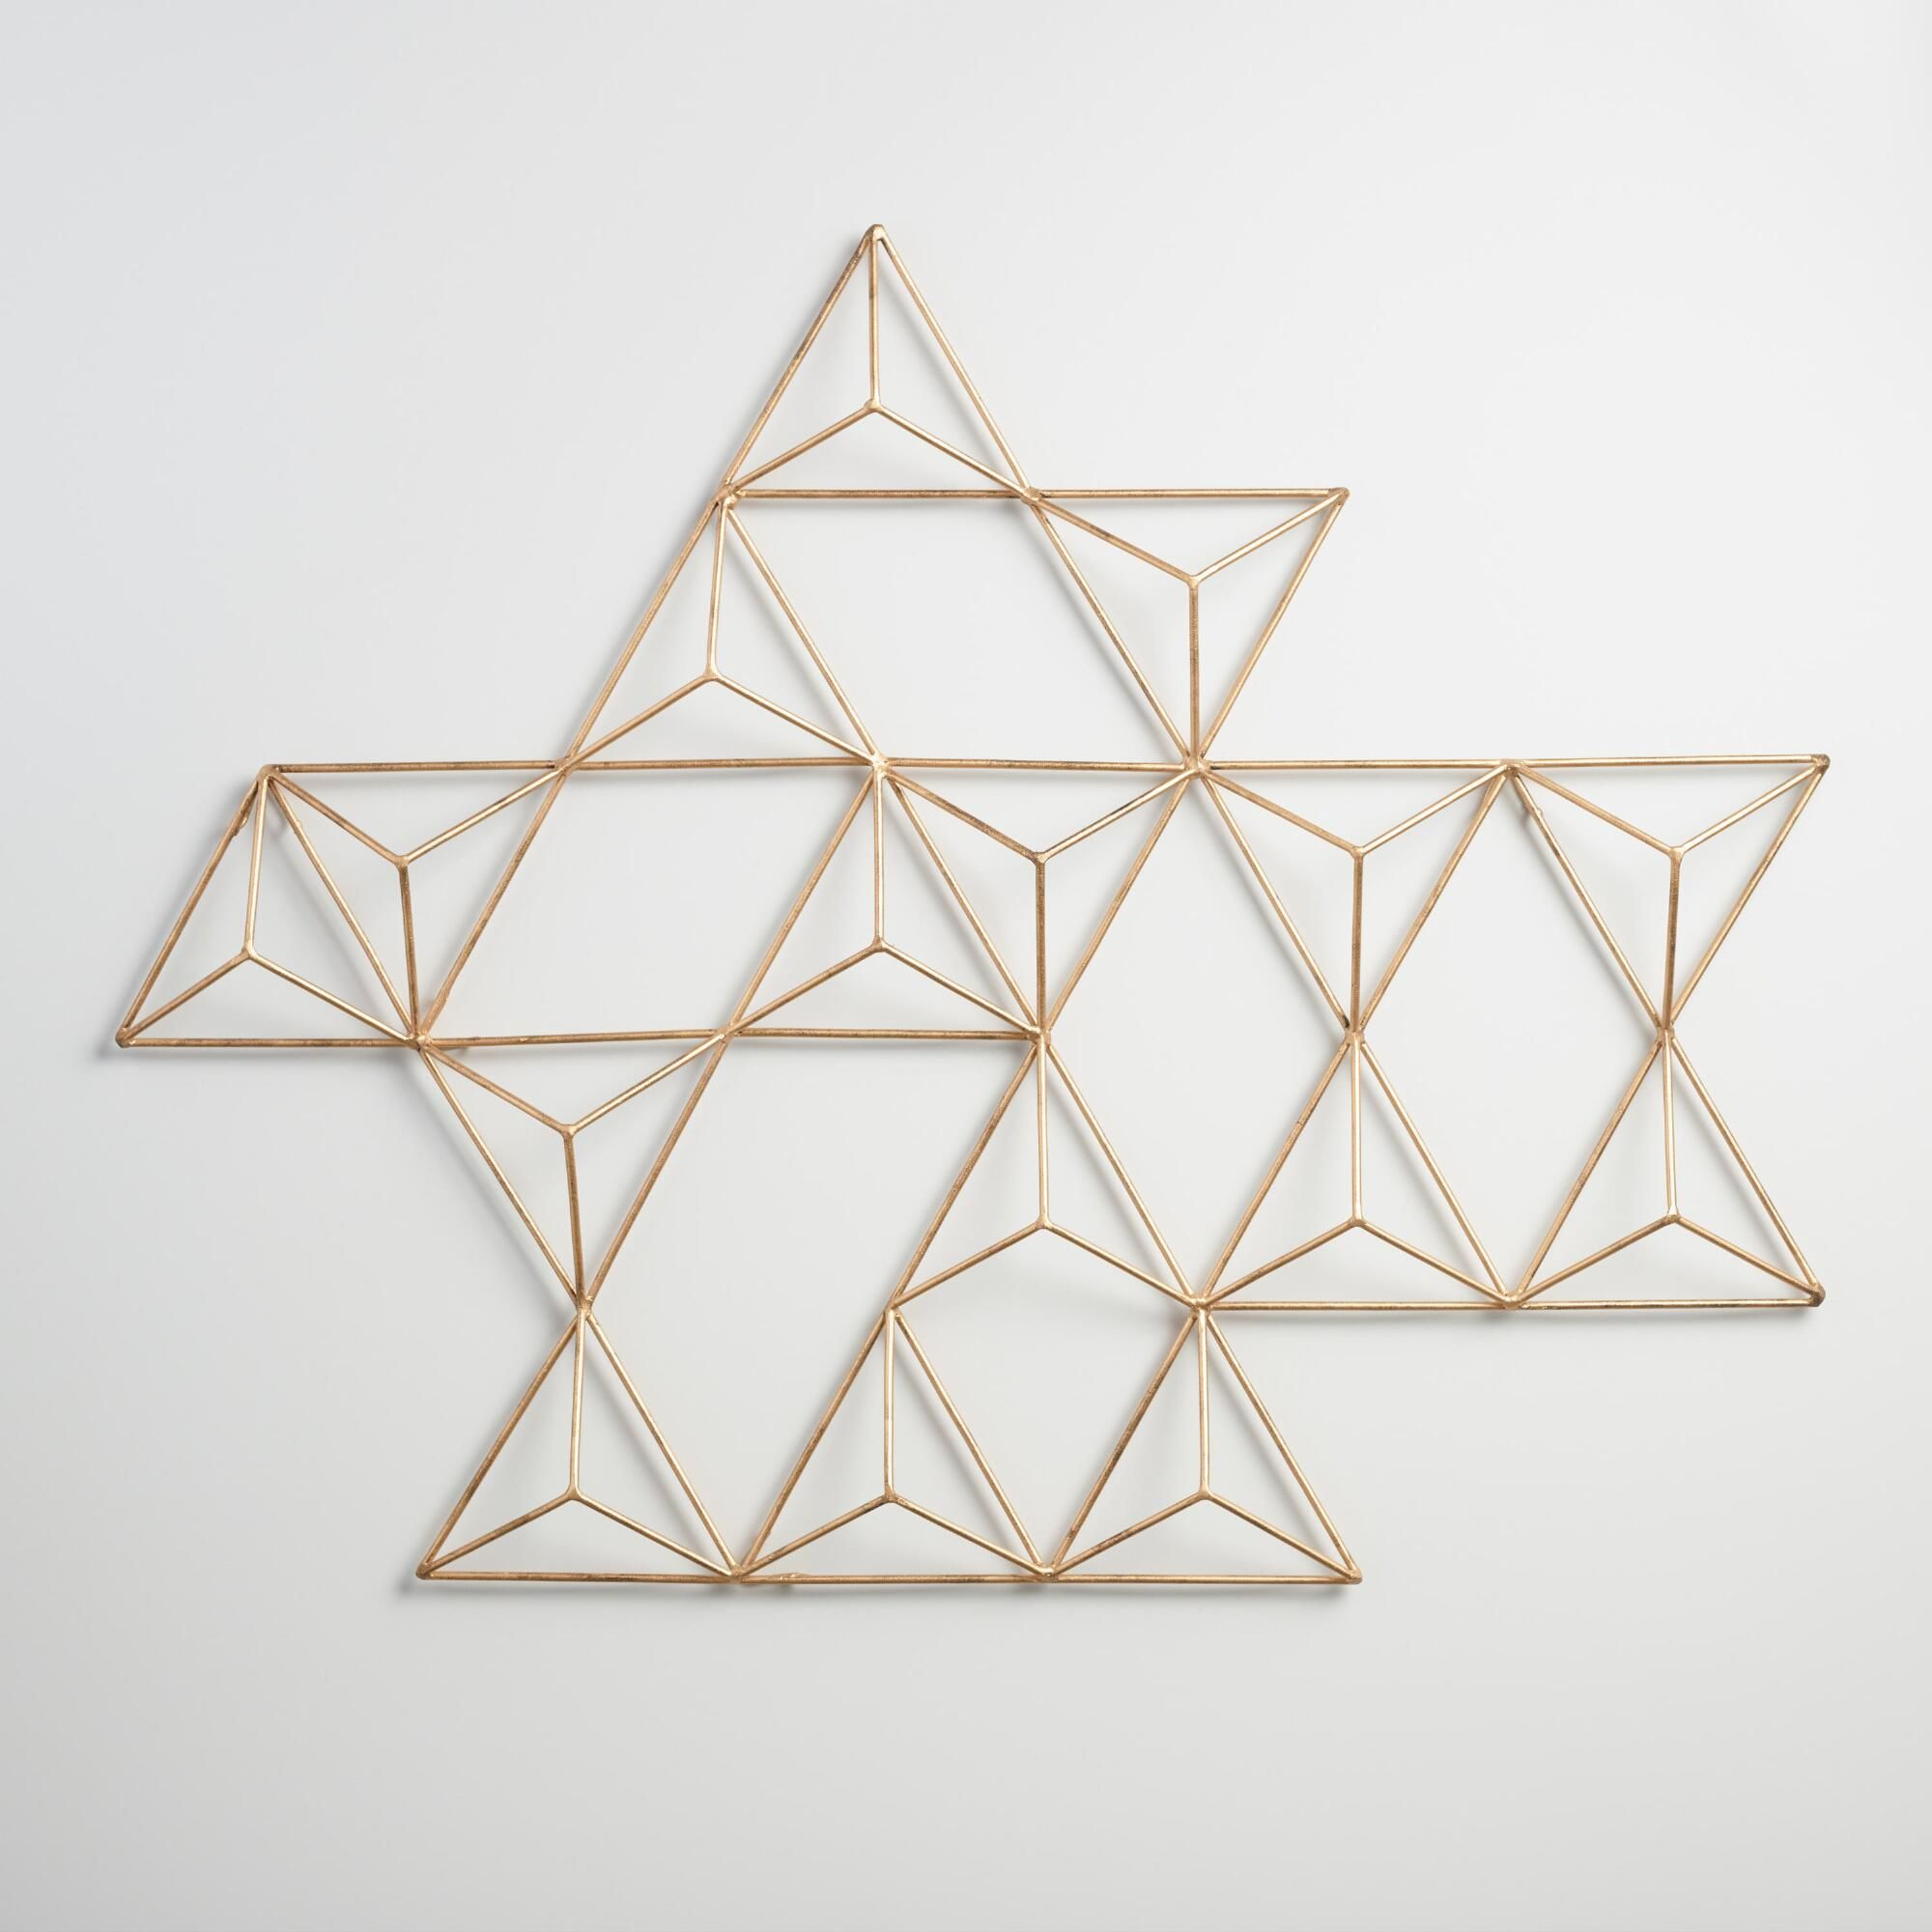 Diy 80 World Market Wall Art For About 15 Using Wood Dowels And Gold Spray Paint Geometric Wall Art Triangle Wall Unique Picture Frames